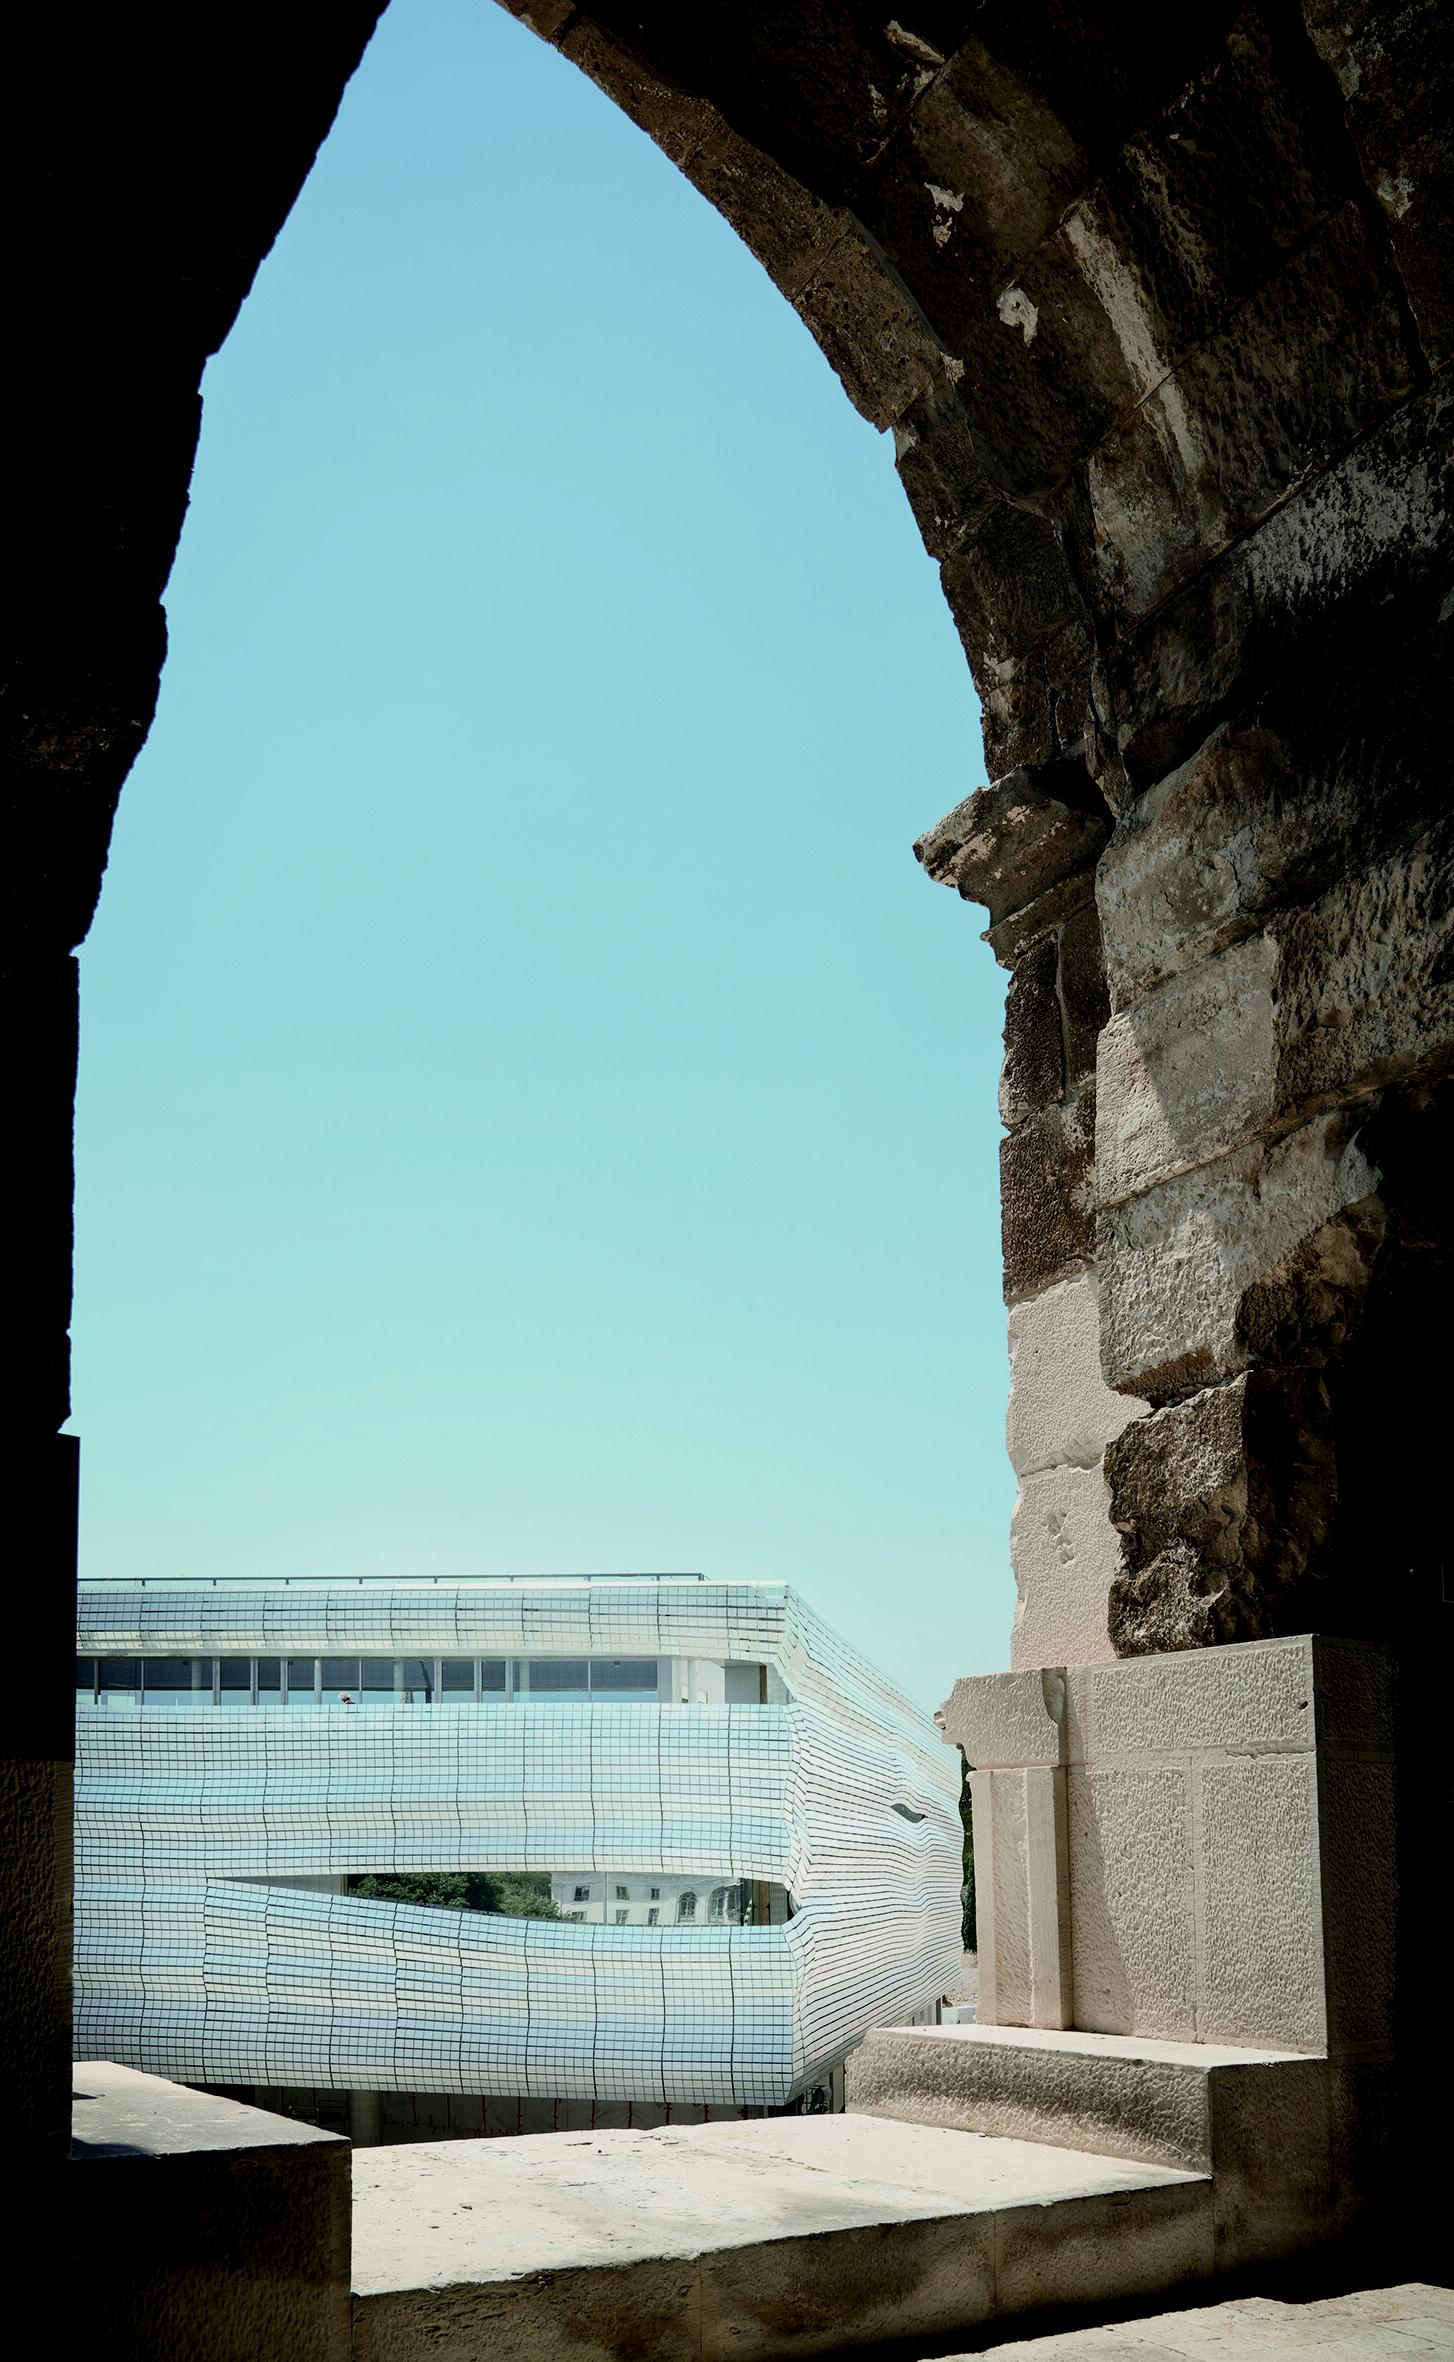 There is a transparent ground floor from which visitors can view the Arena, topped by a shimmering glass façade